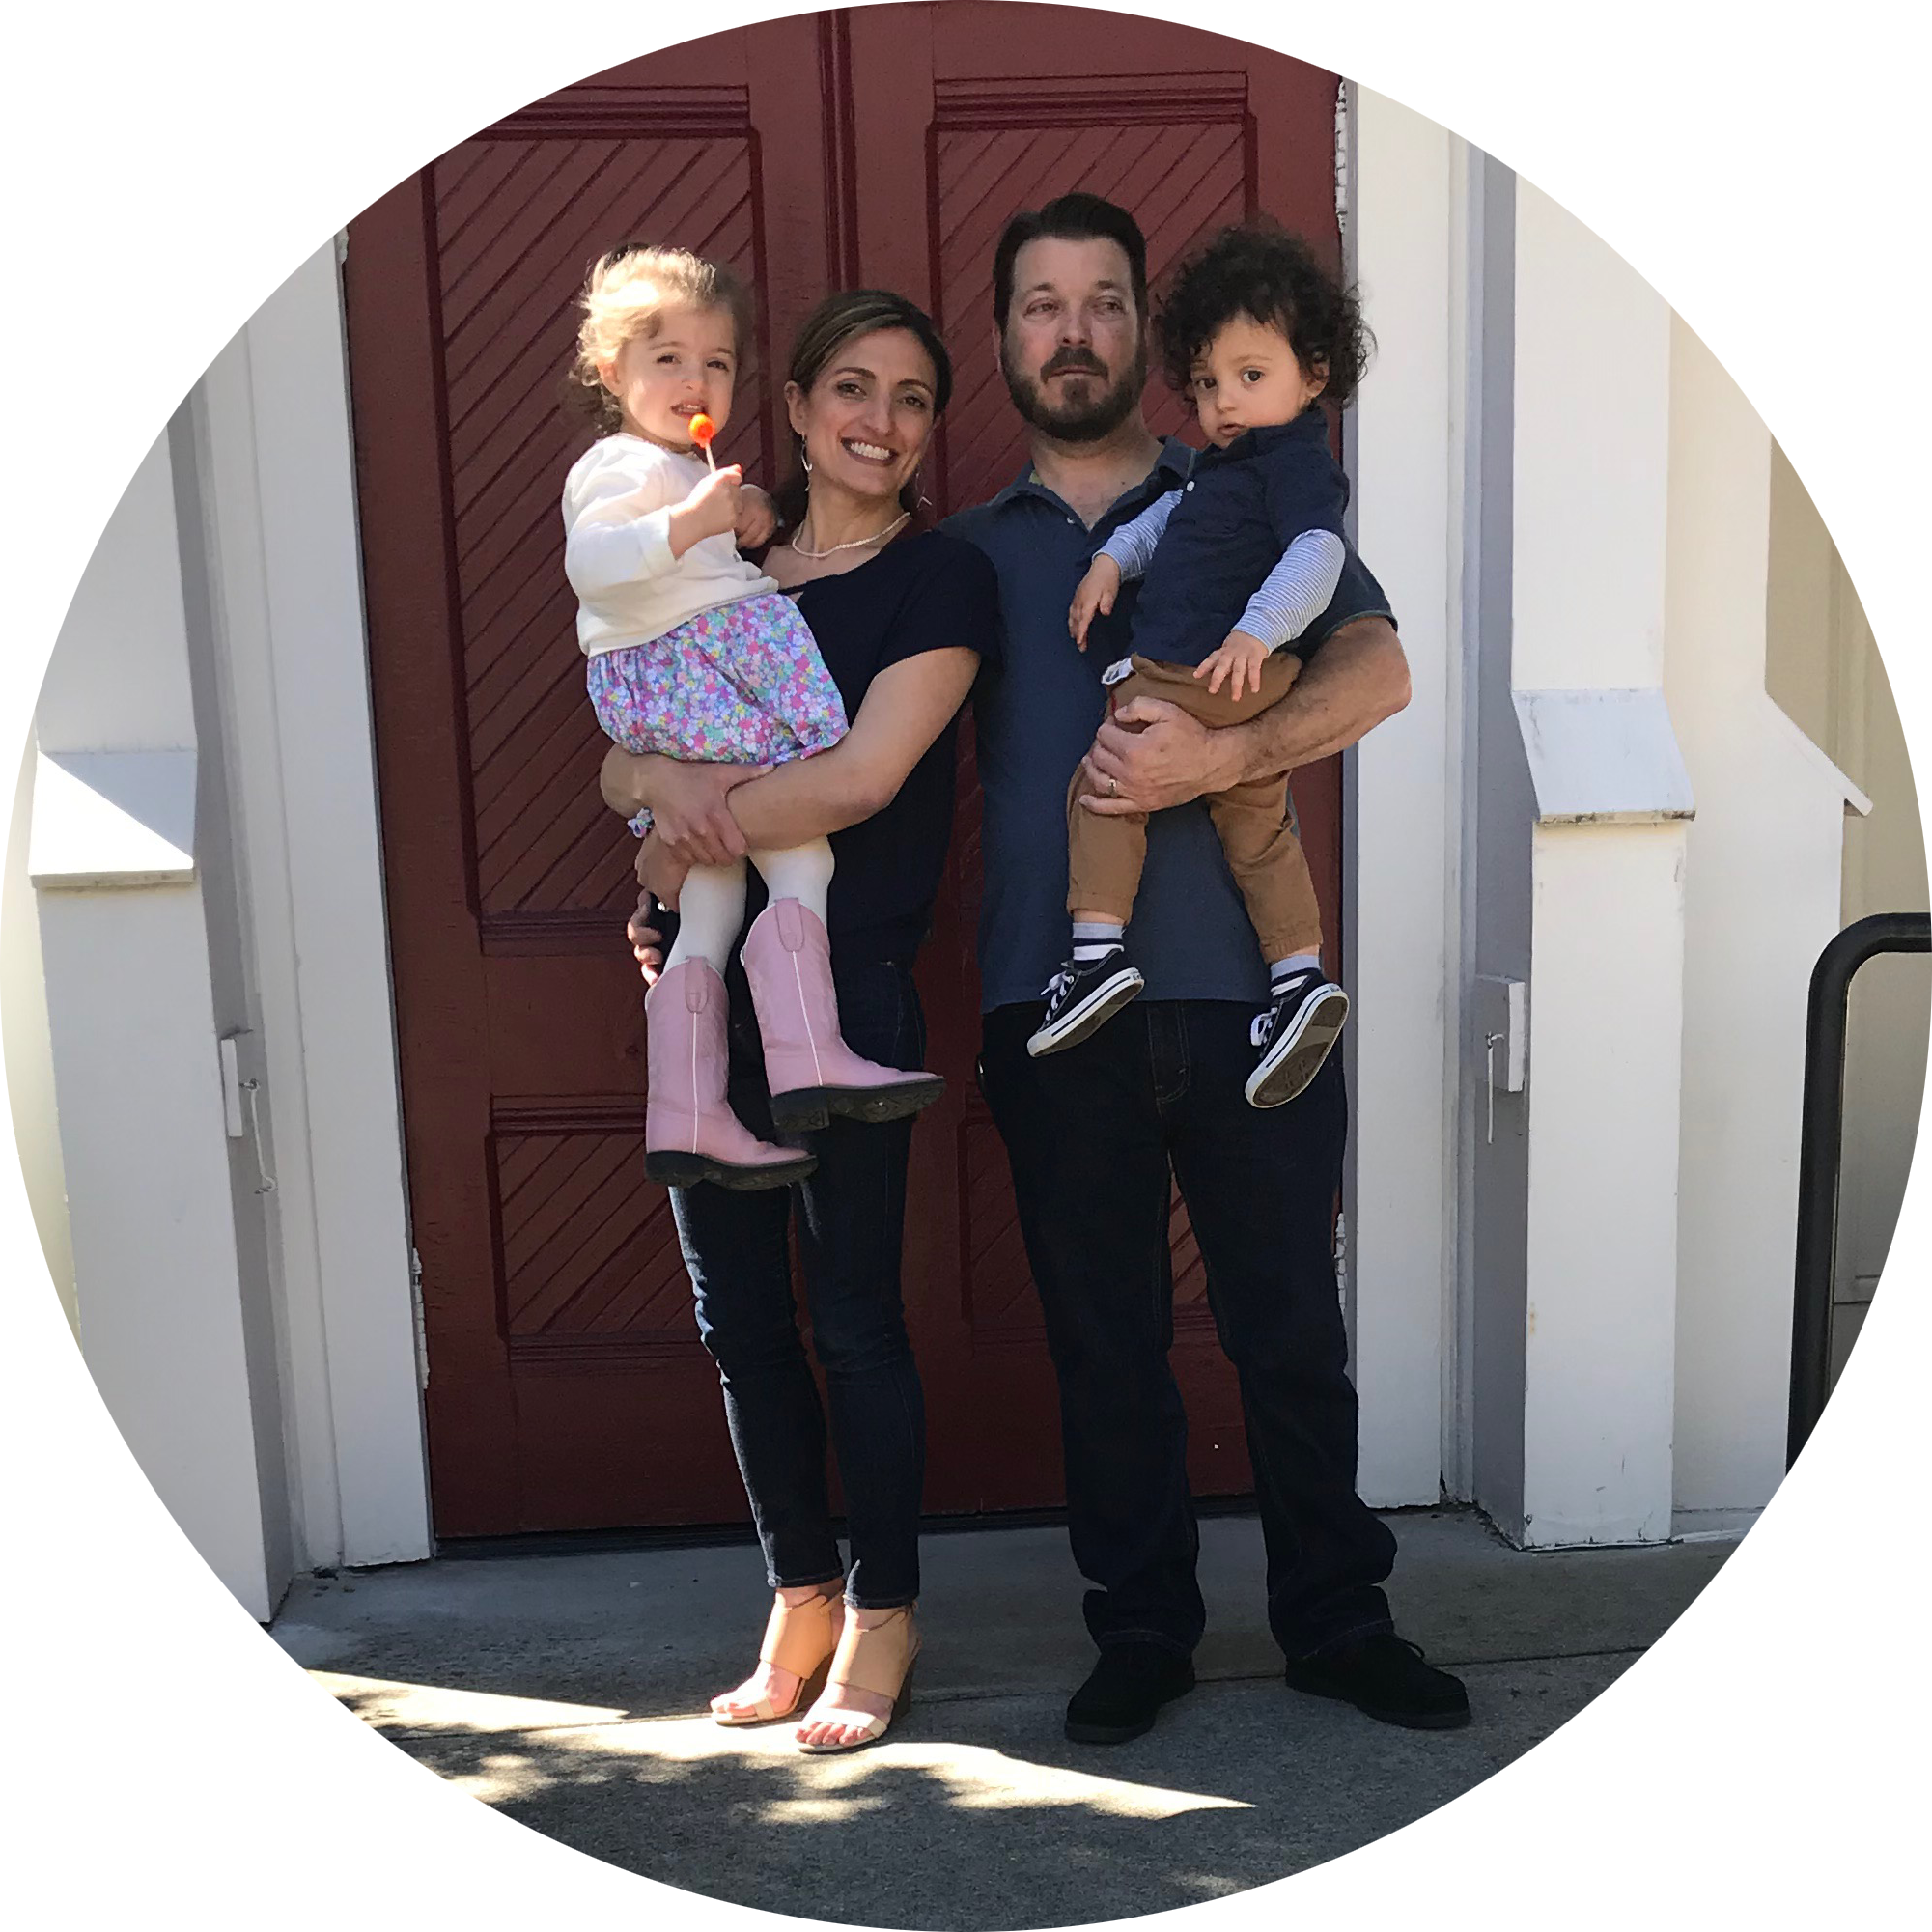 Zeetoon Soap founder, Michele, and her family